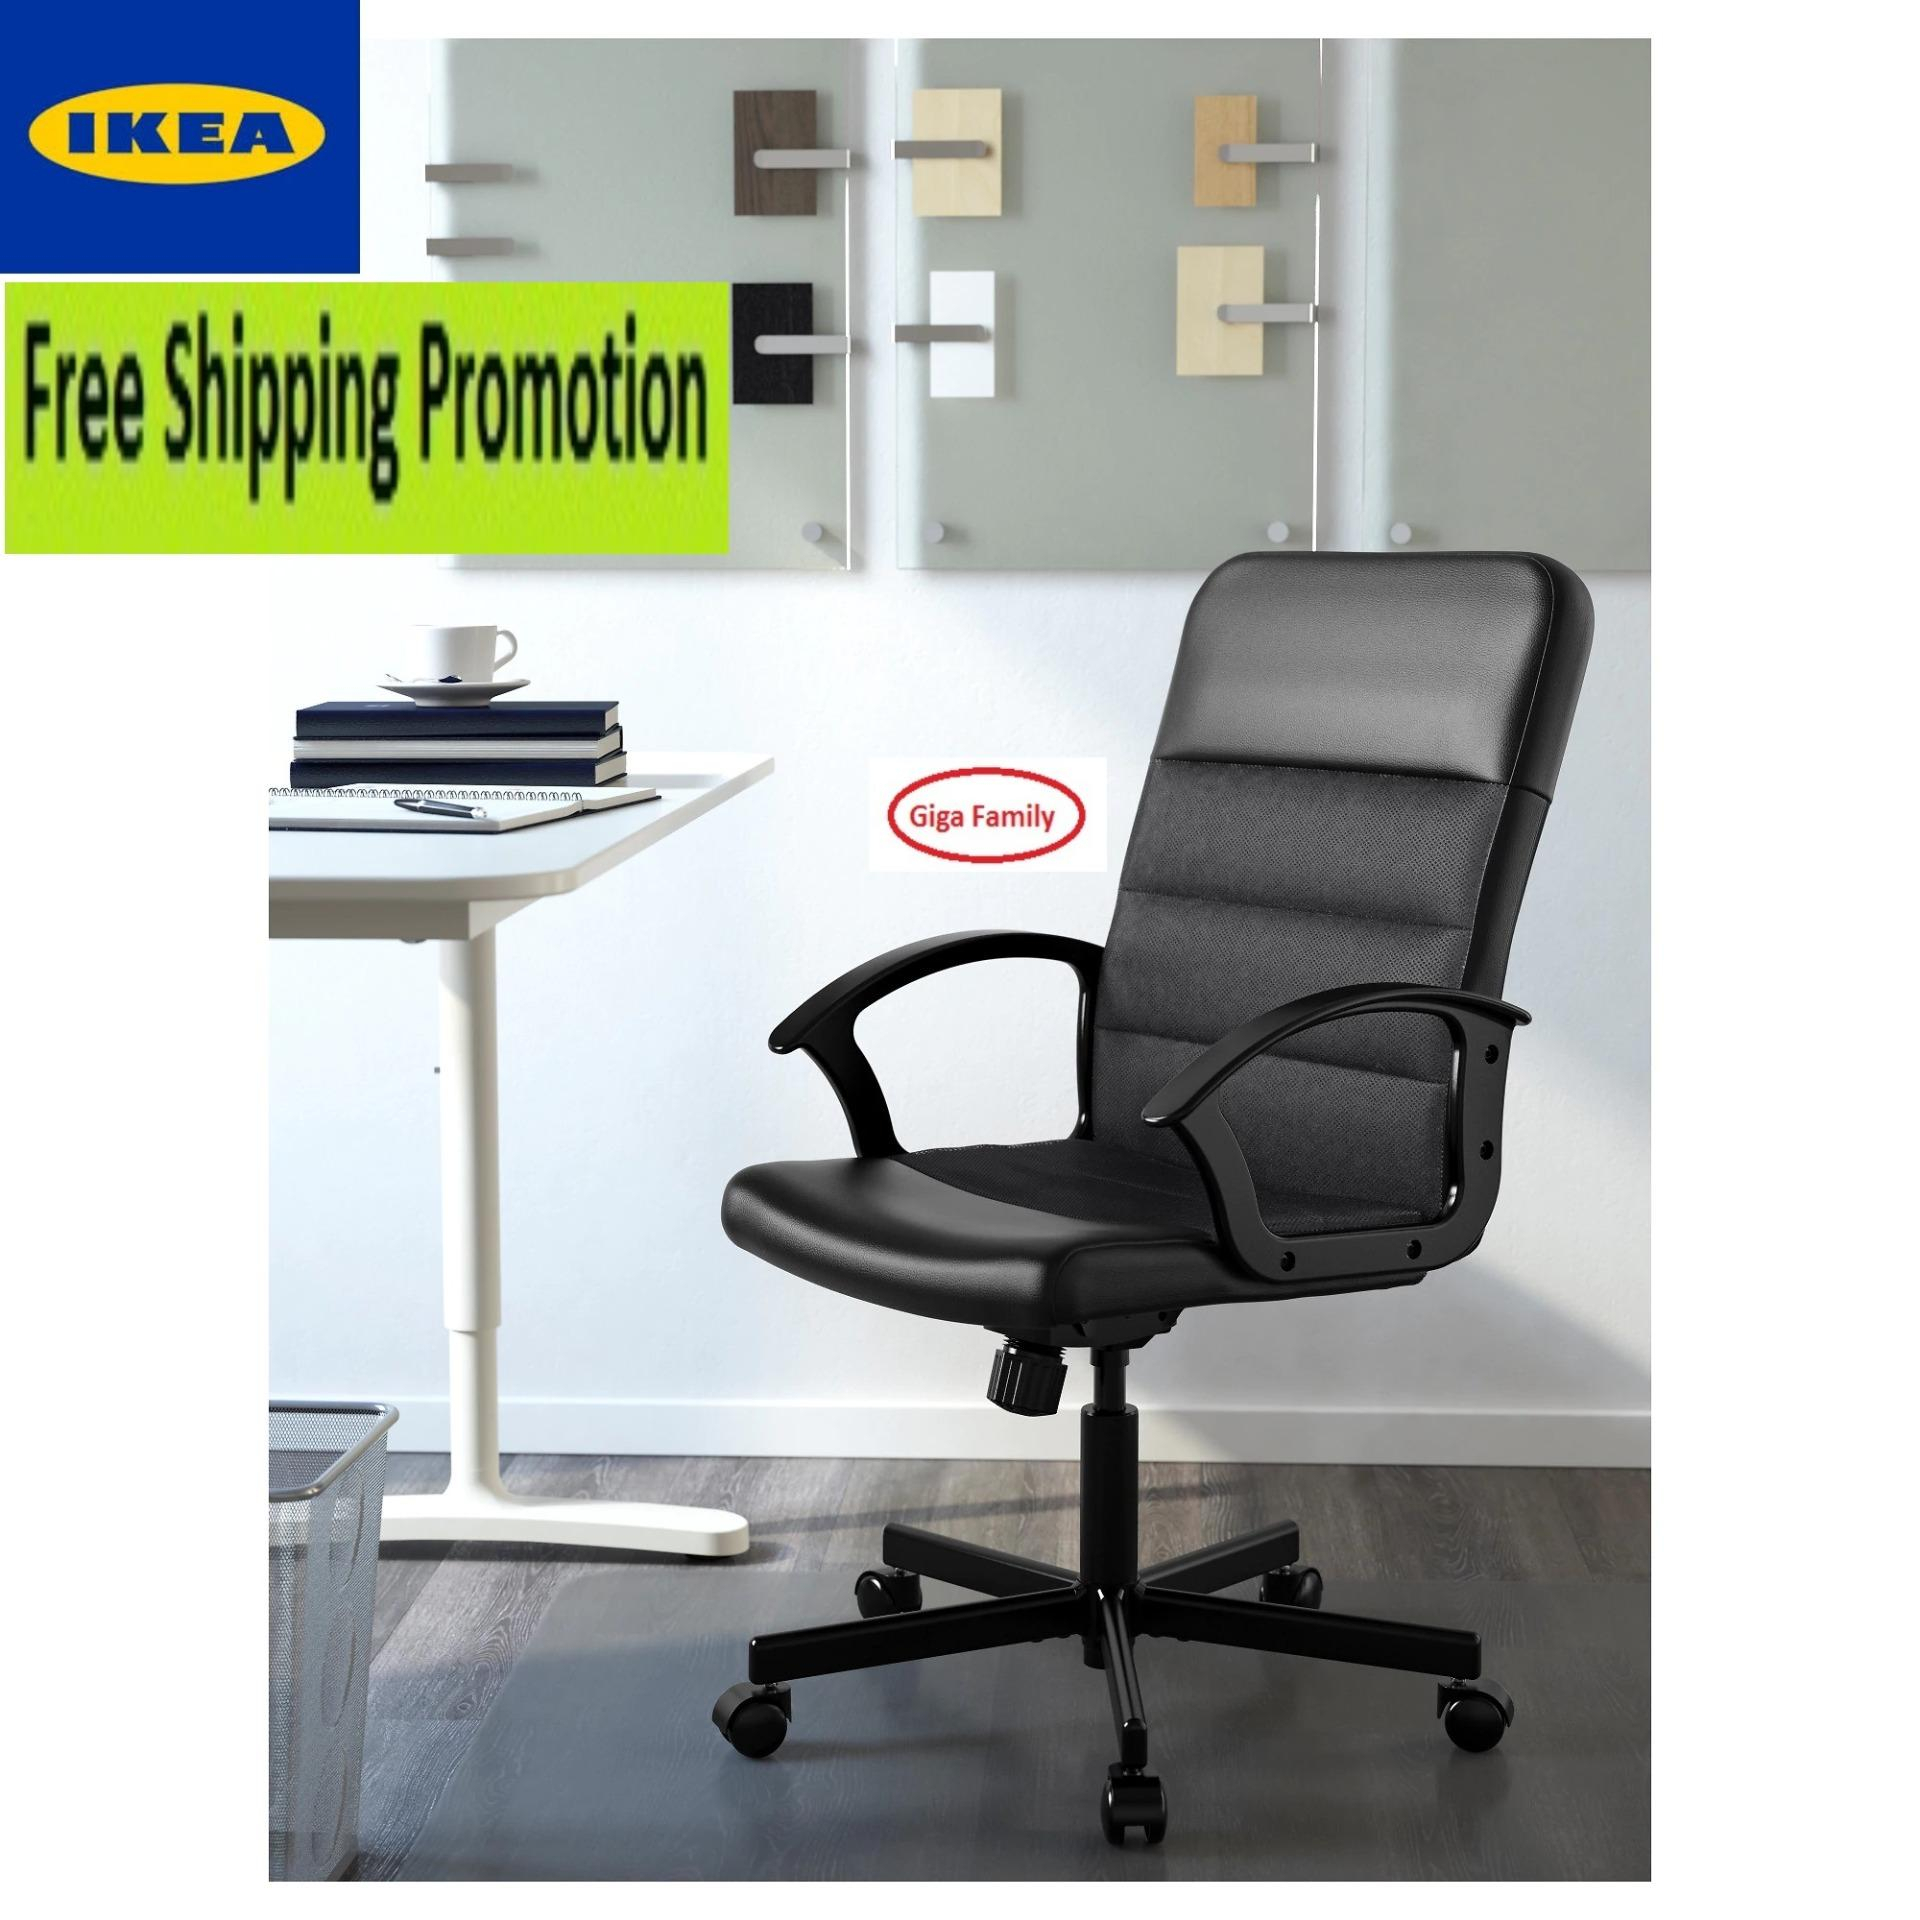 Home Home Office Chairs – Buy Home Home Office Chairs At Best Price Regarding Chill Swivel Chairs With Metal Base (Image 21 of 25)